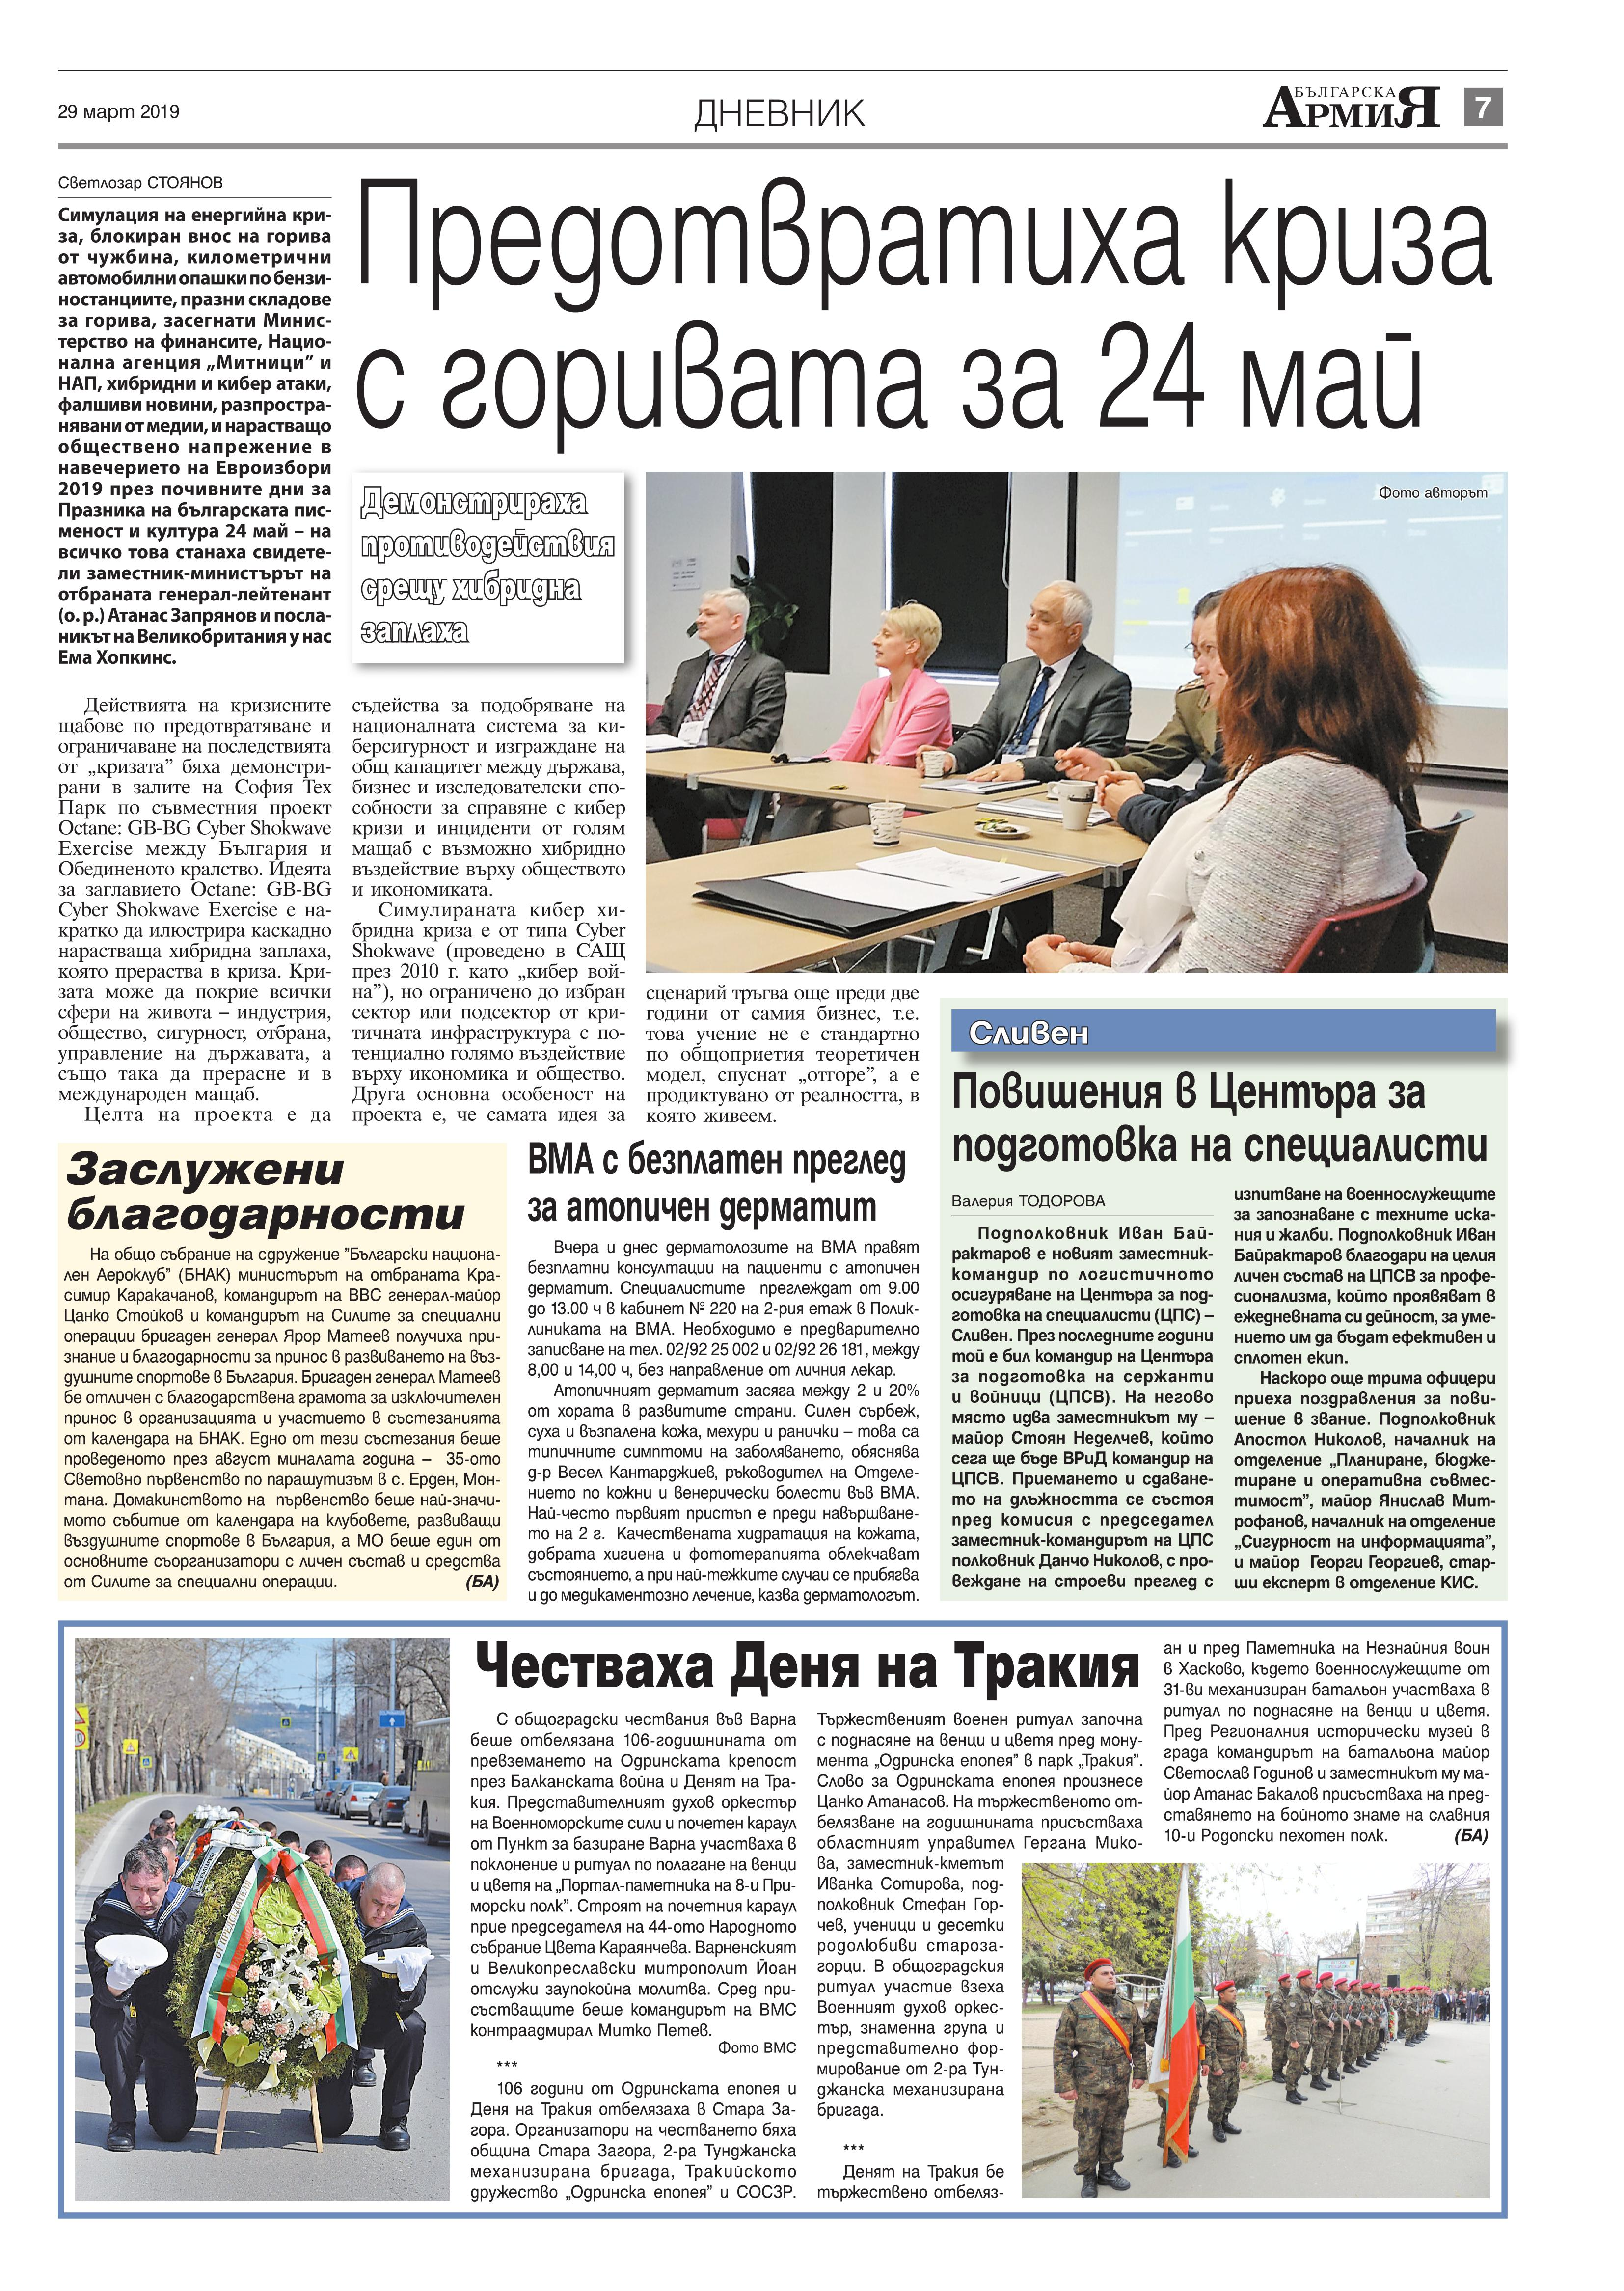 https://www.armymedia.bg/wp-content/uploads/2015/06/07.page1_-86.jpg